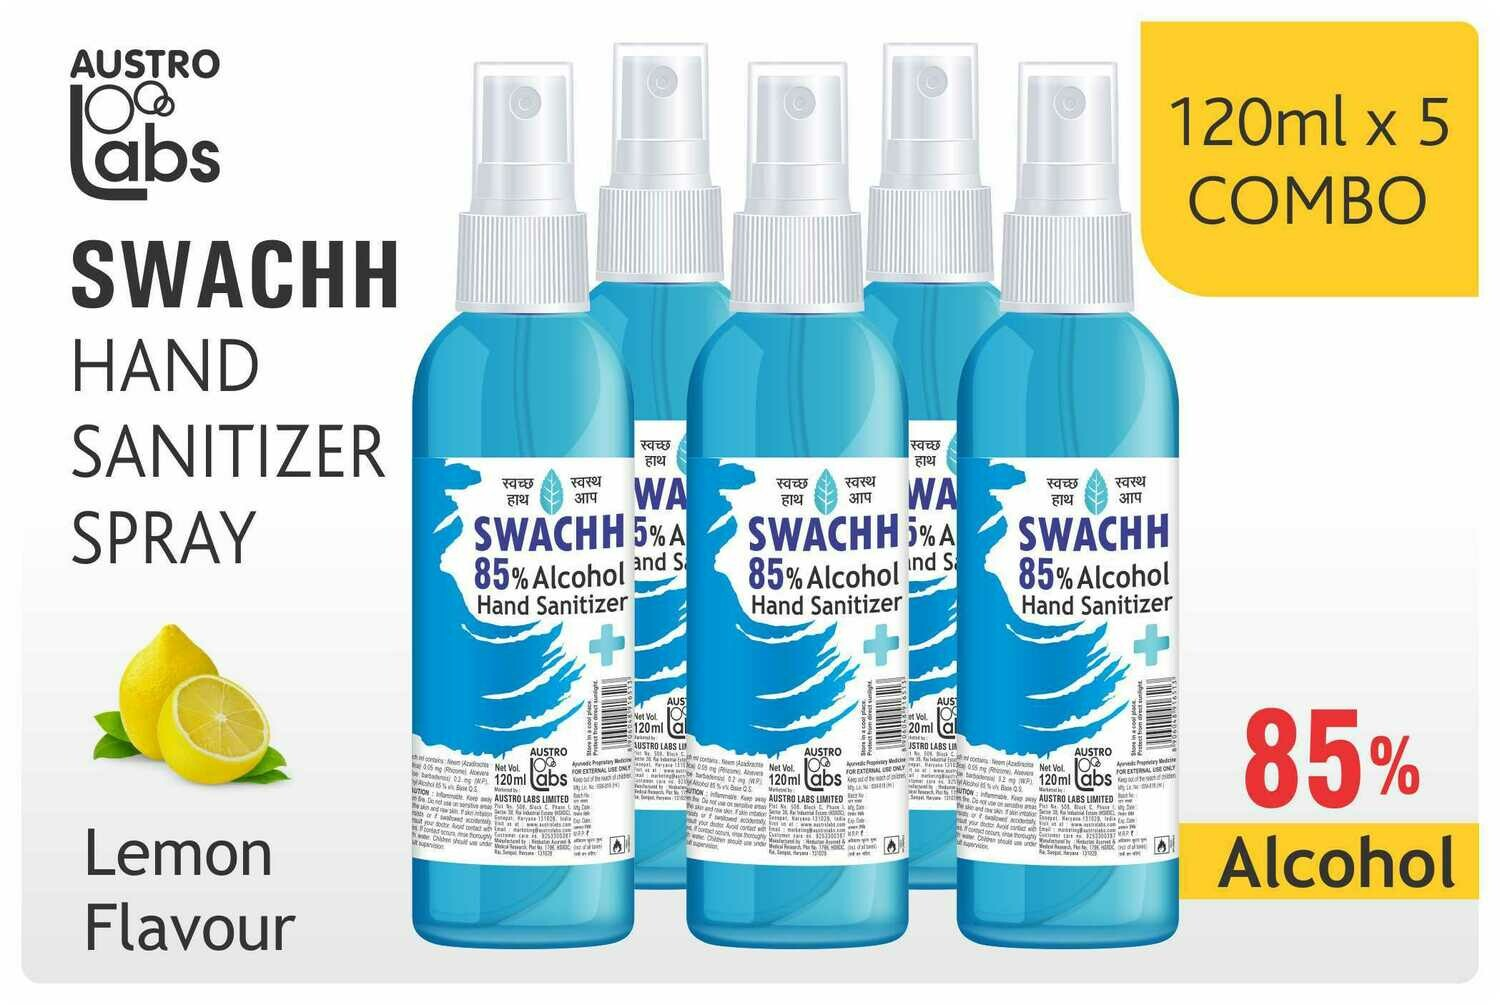 Austro Labs Swachh Hand Sanitizer (Mist) - Pack of 5